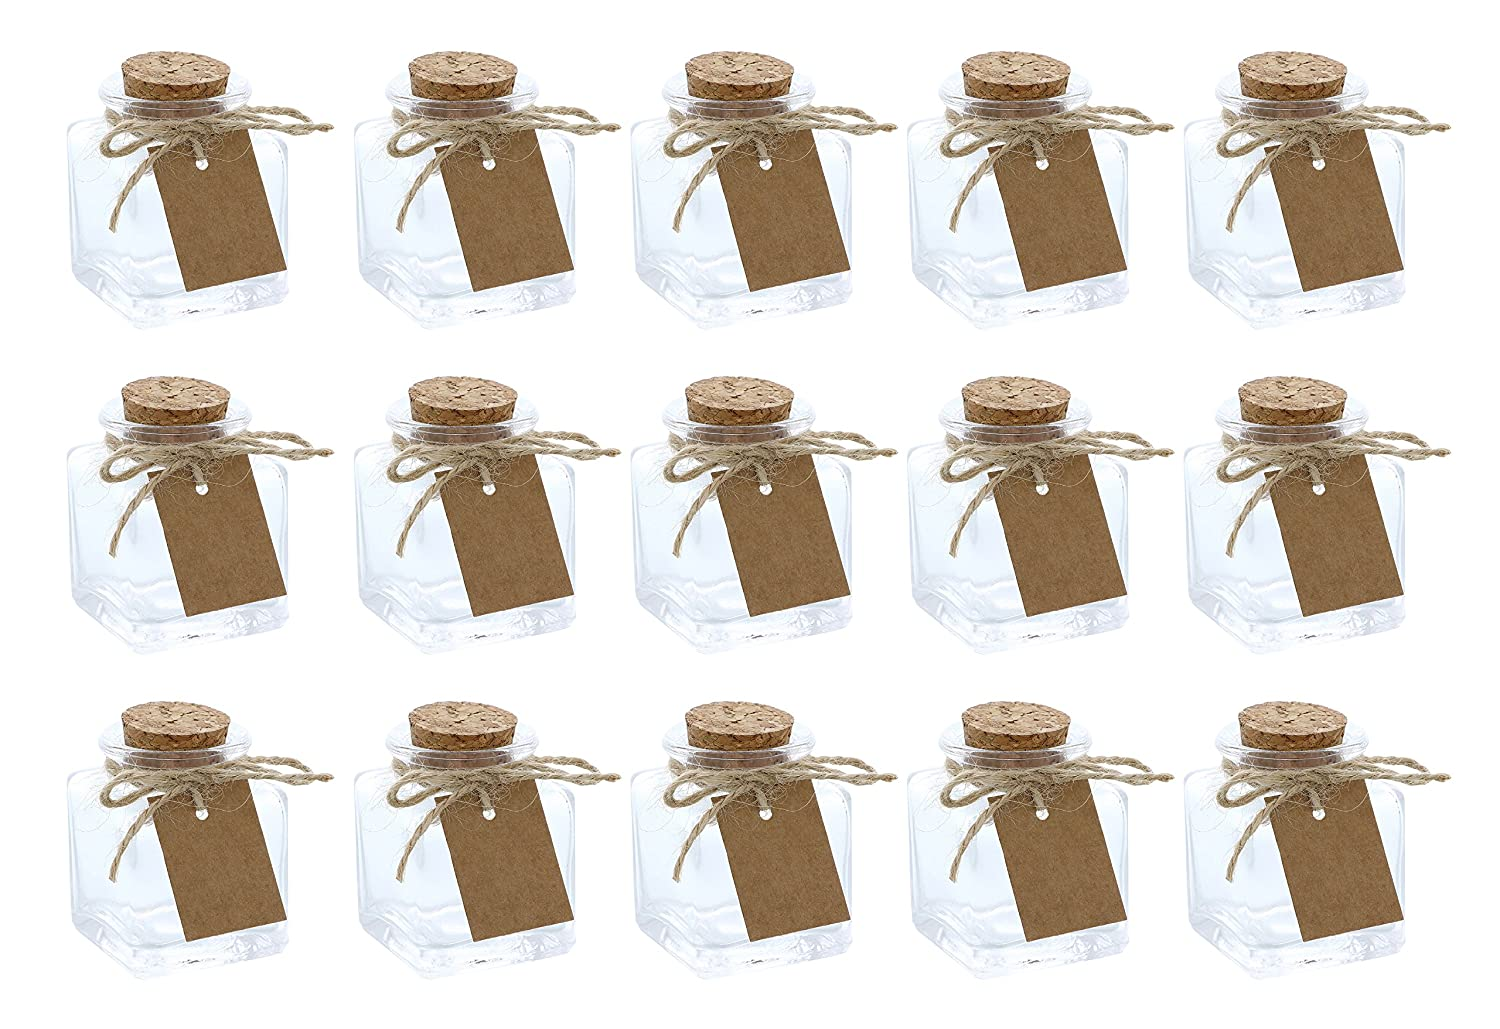 Clear Glass Bottles with Cork Lids- 15-Pack of Mini Transparent Squared Jars with Stoppers for Vintage Wedding Decoration, DIY, Home, Party Favors, 1.7-Ounce Juvale